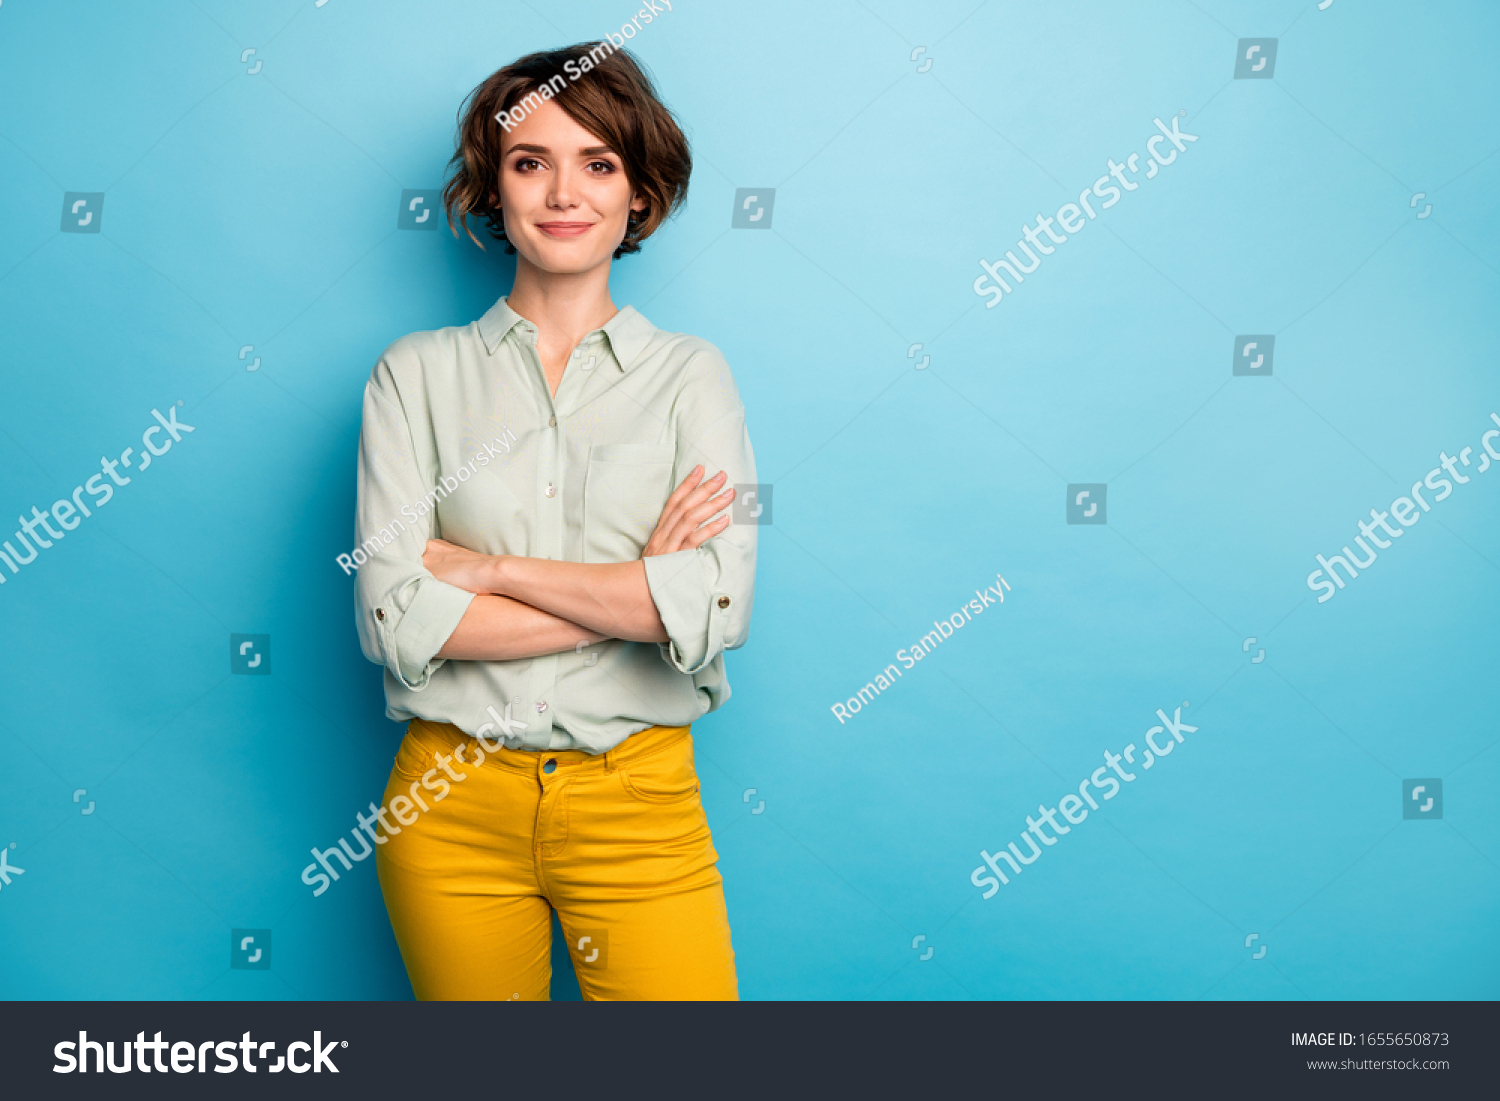 Photo of cool attractive business lady short hairstyle friendly smiling responsible person arms crossed wear casual green shirt yellow pants isolated blue color background #1655650873